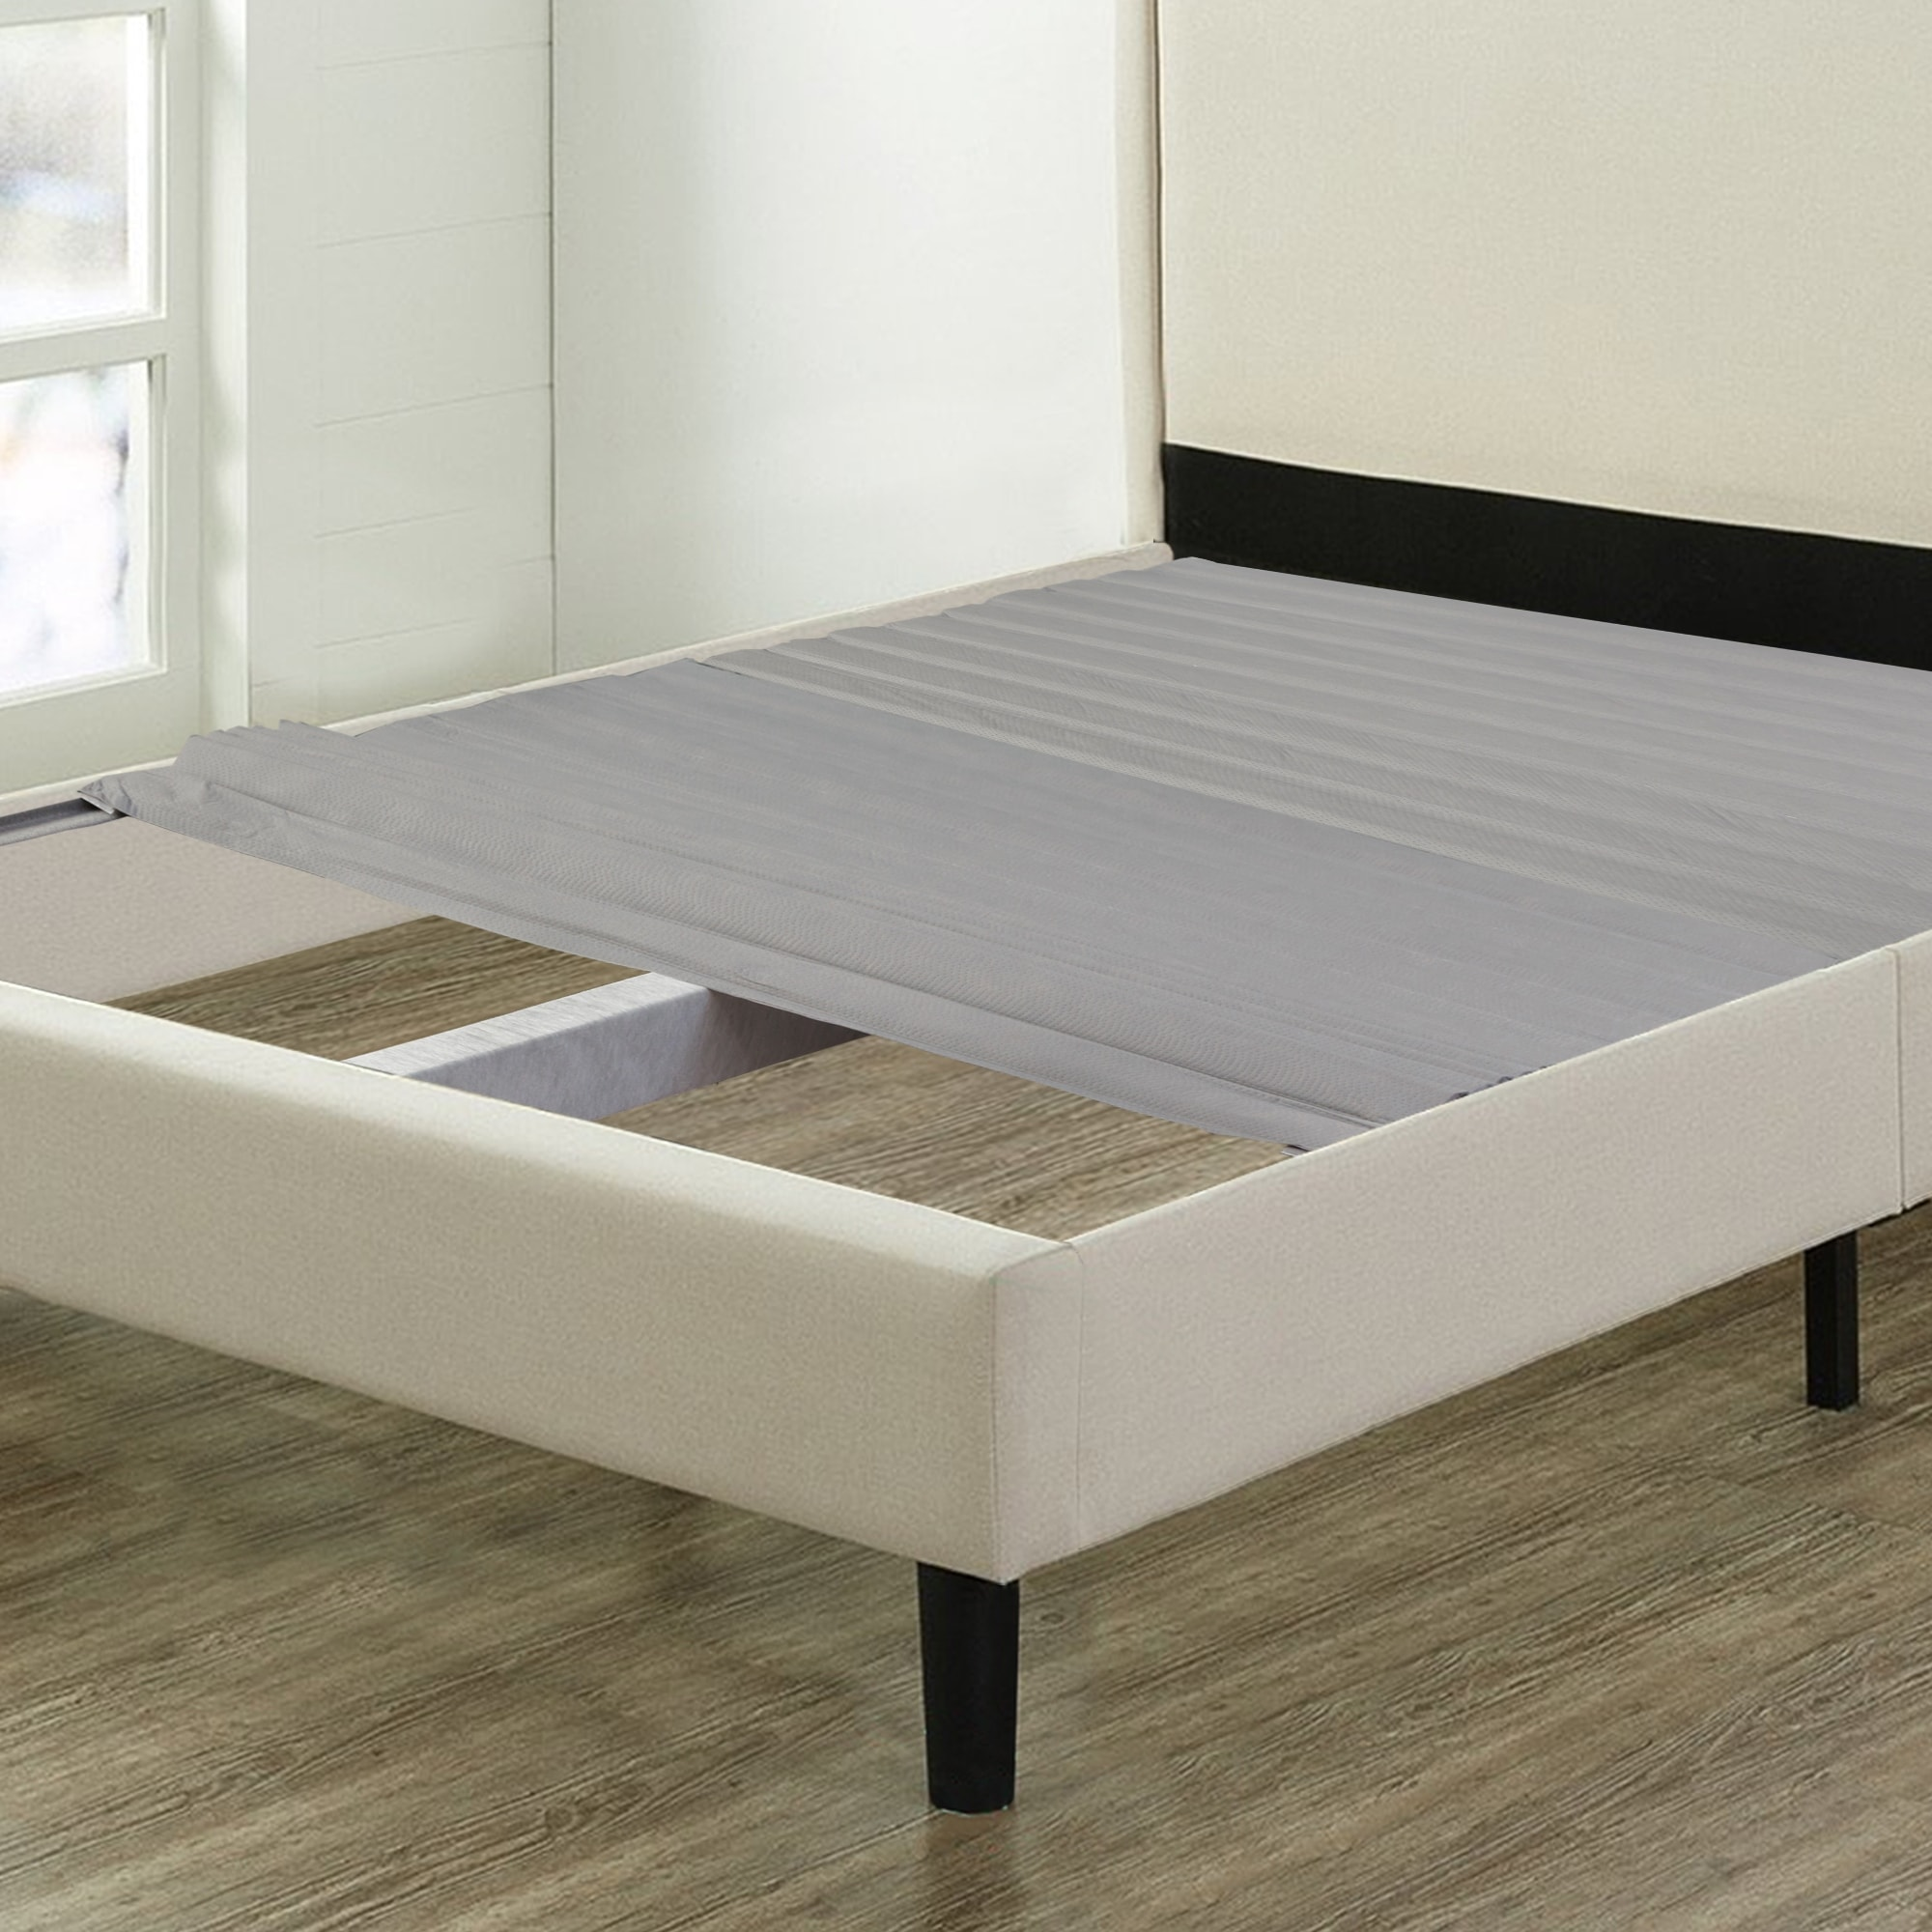 Shop Black Friday Deals On Onetan 0 75 Inch Standard Mattress Support Wooden Bunkie Board Slats With Cover Overstock 25445102